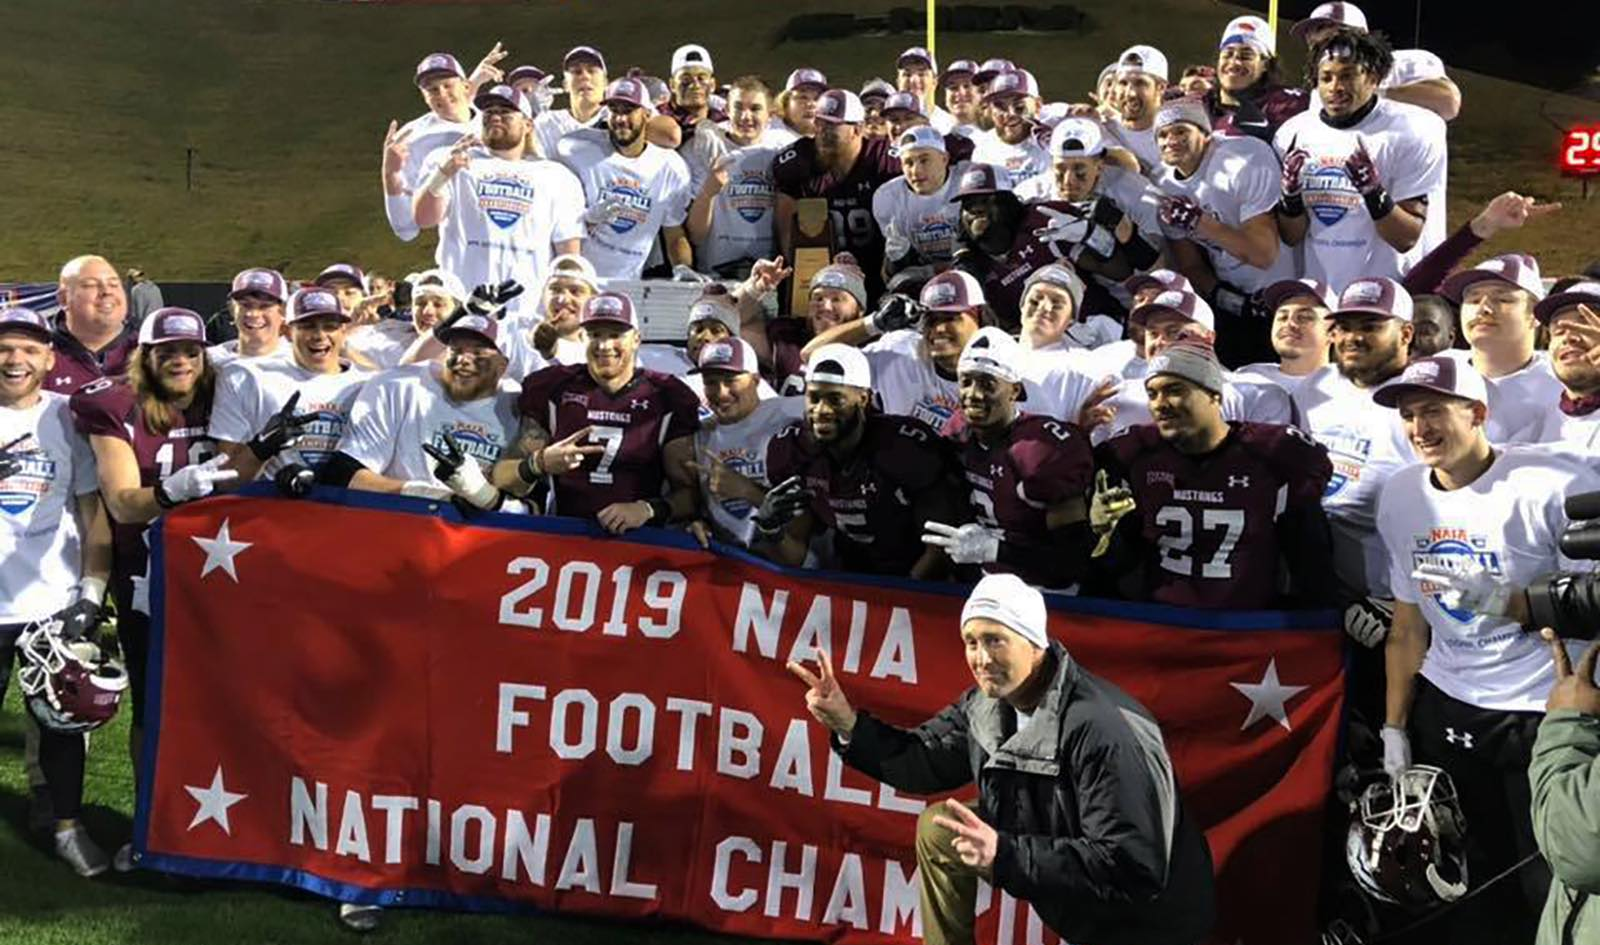 Morningside Football 2019 NAIA Champions